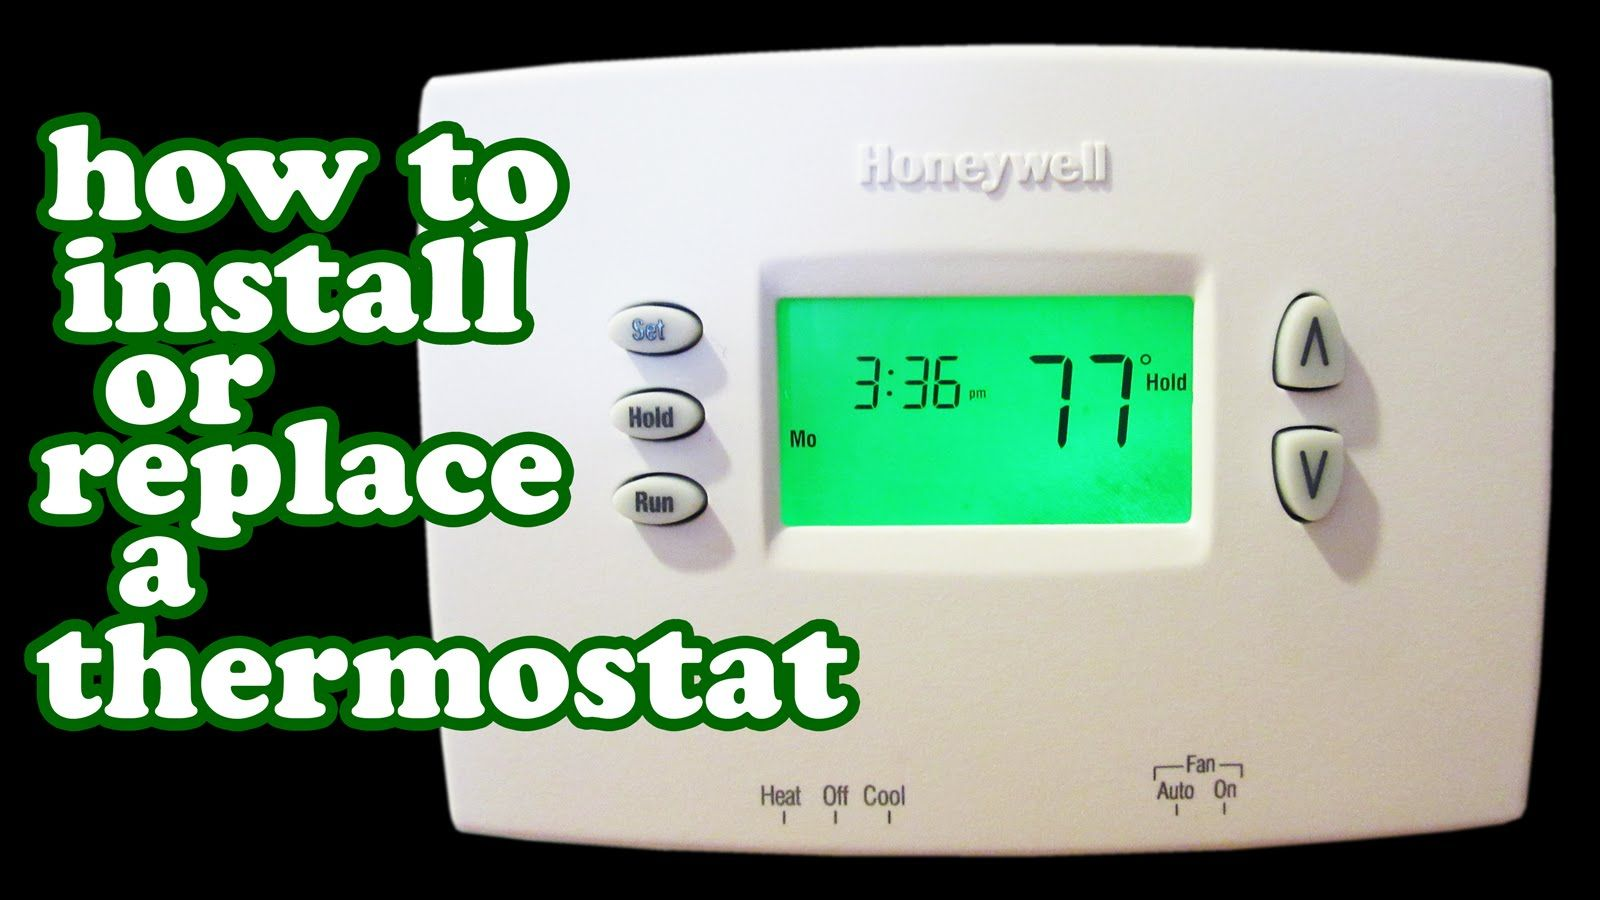 Thermostat Wiring Air conditioner heater, Home thermostat